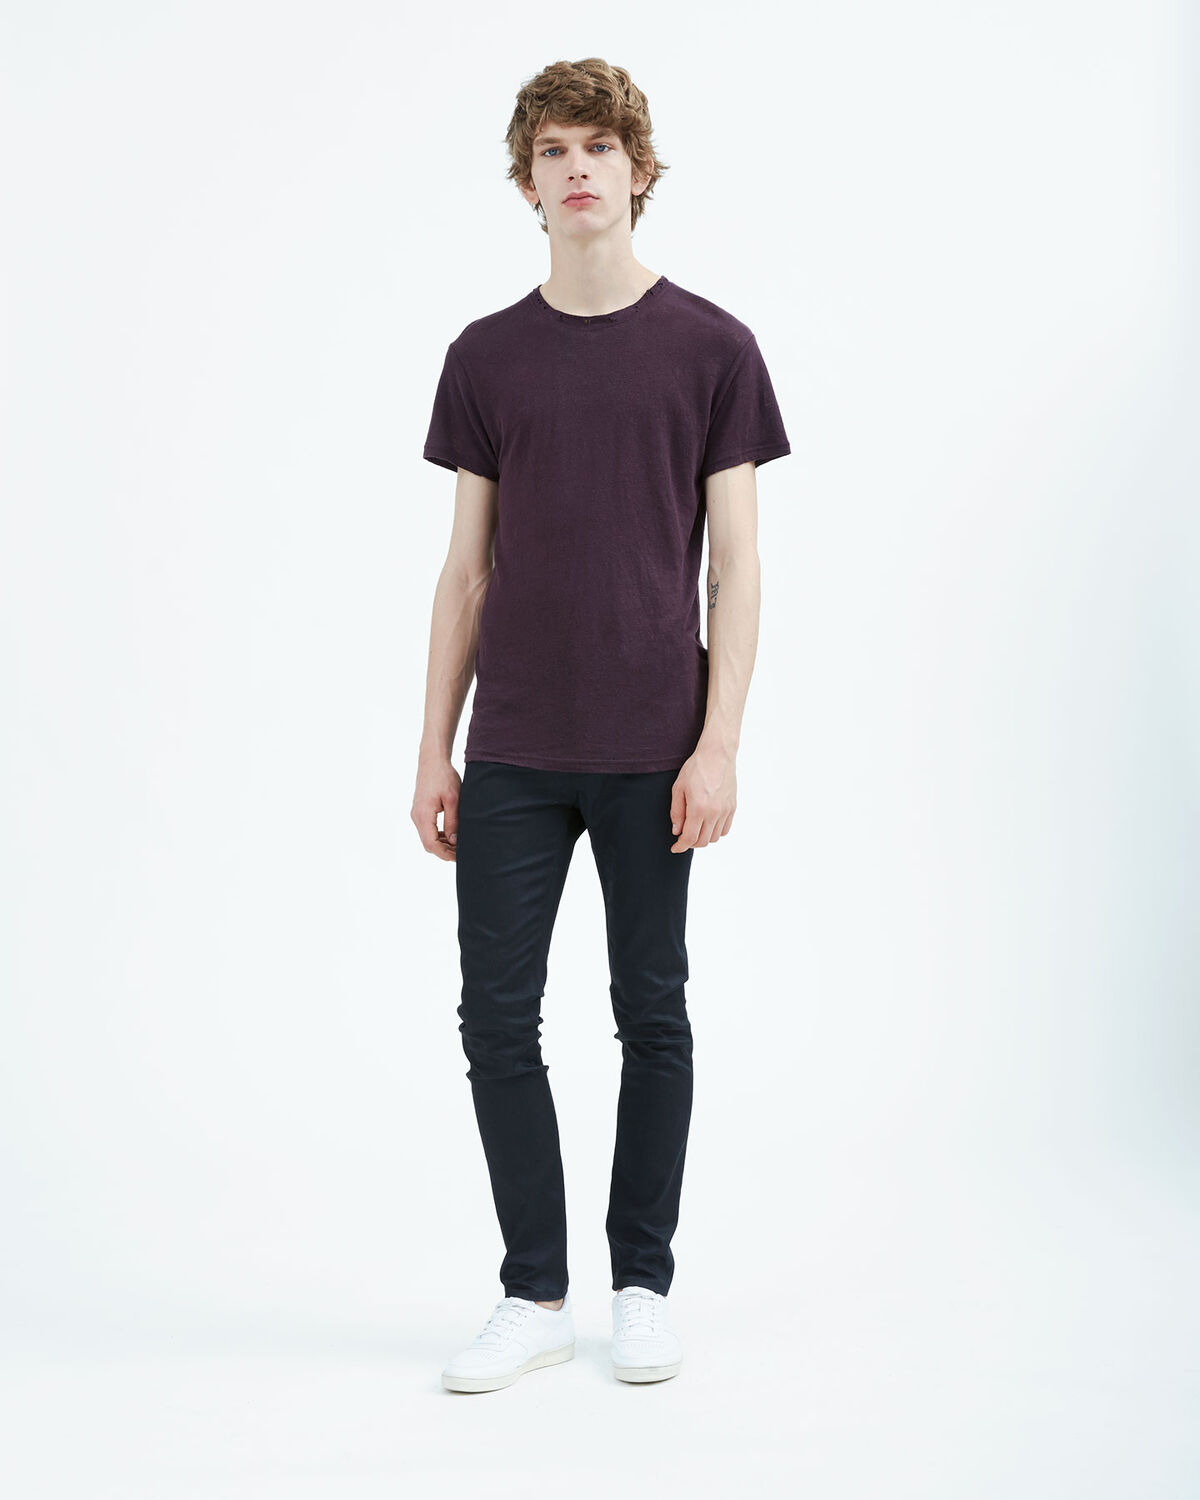 IRO - HALLY T-SHIRT BURGUNDY